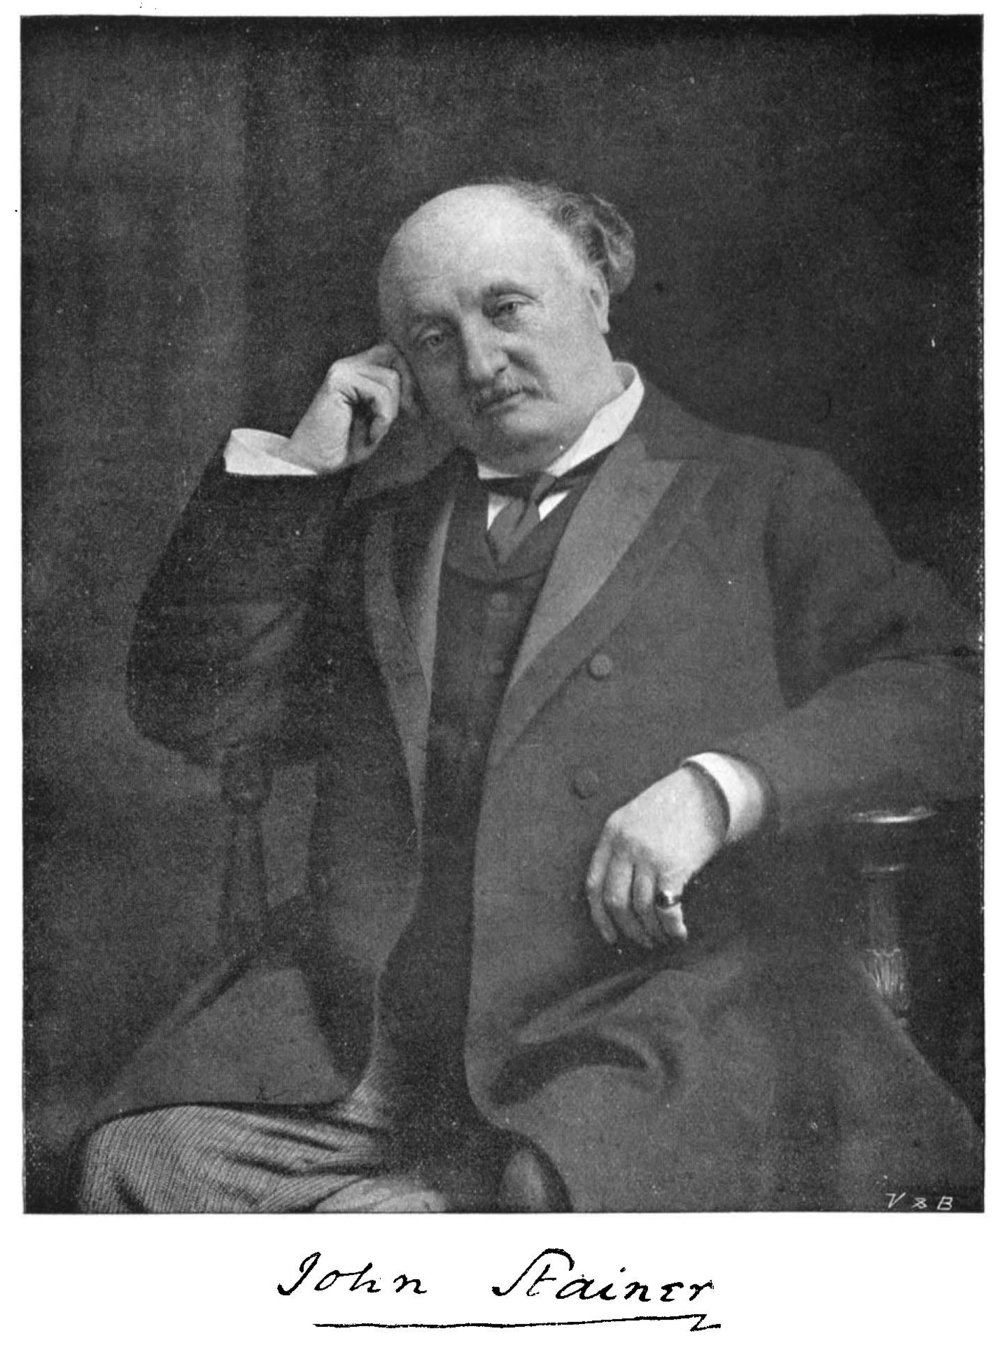 John Stainer , from  The Musical Times , 1 May 1901, p. 298.